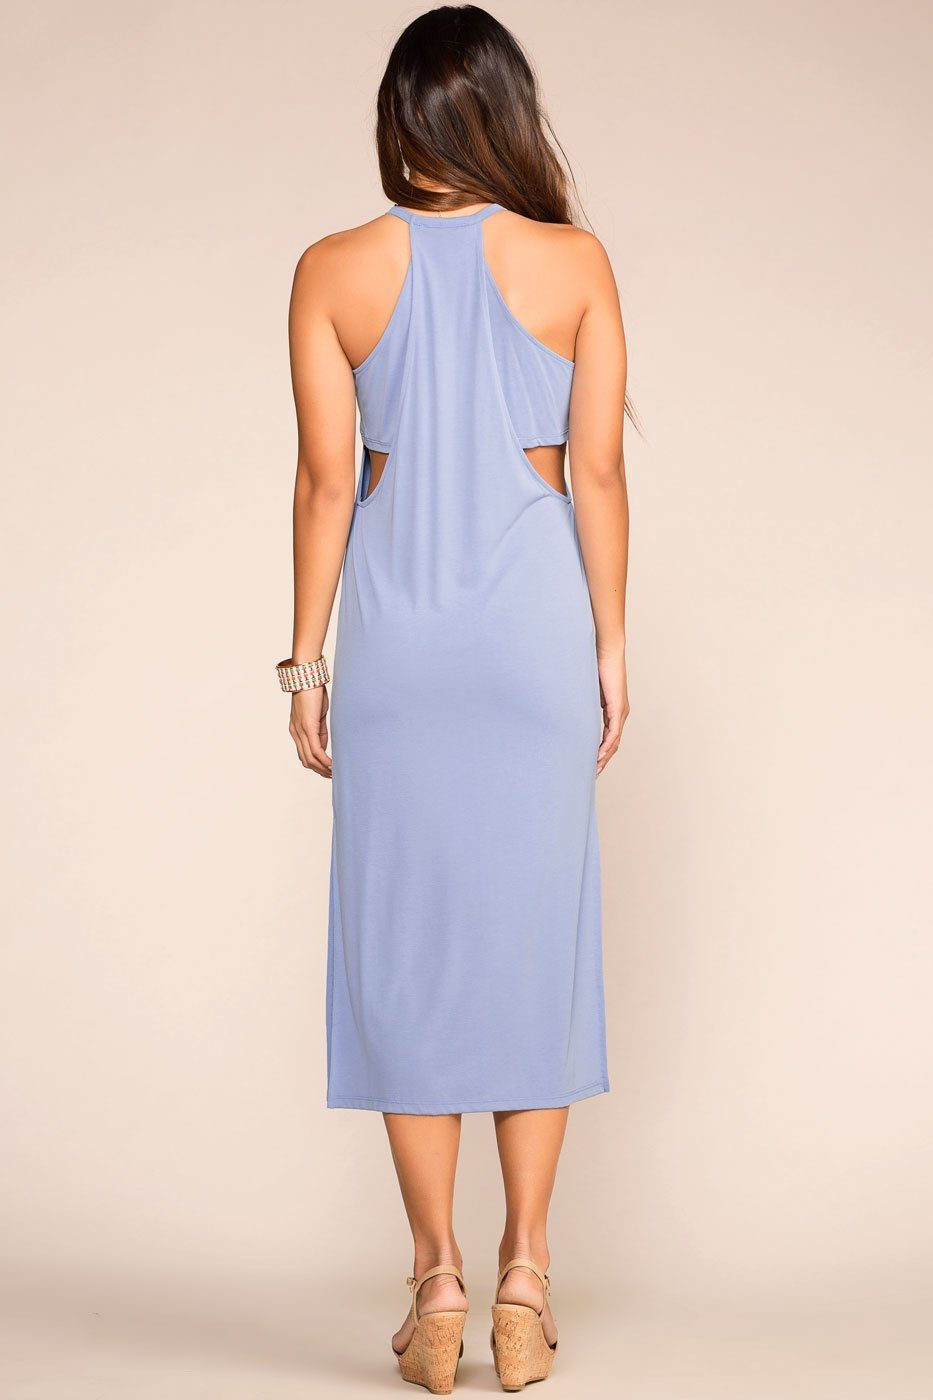 Light Blue Layered Midi Dress with Halter Neck